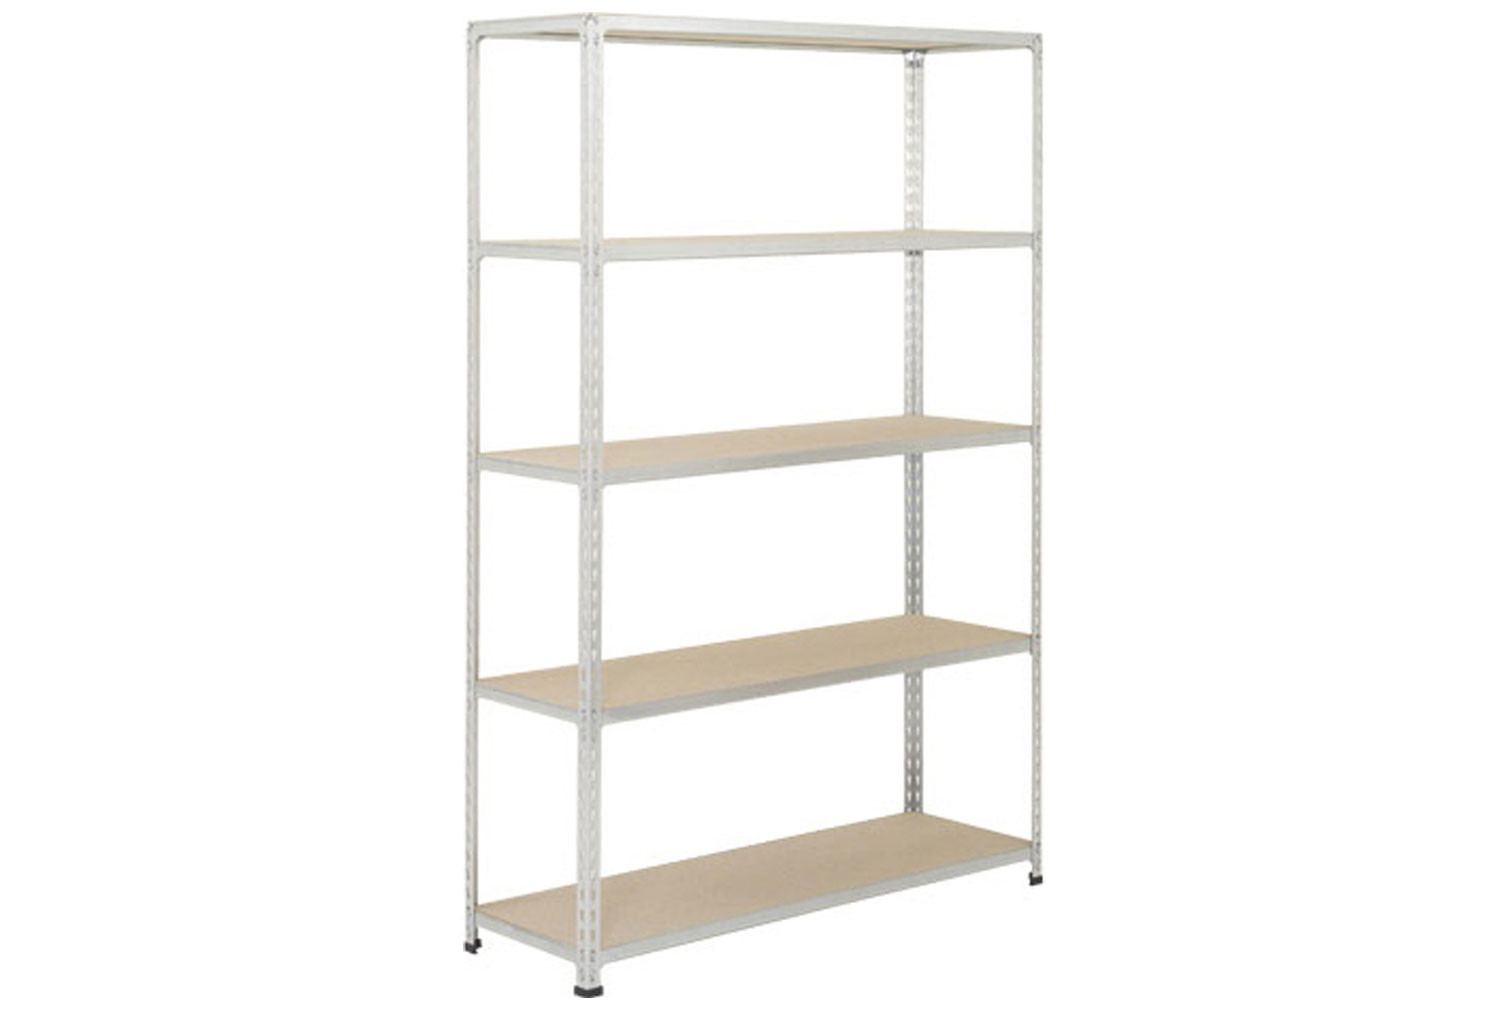 Rapid 2 Shelving With 5 Chipboard Shelves 1220wx1980h (Grey)